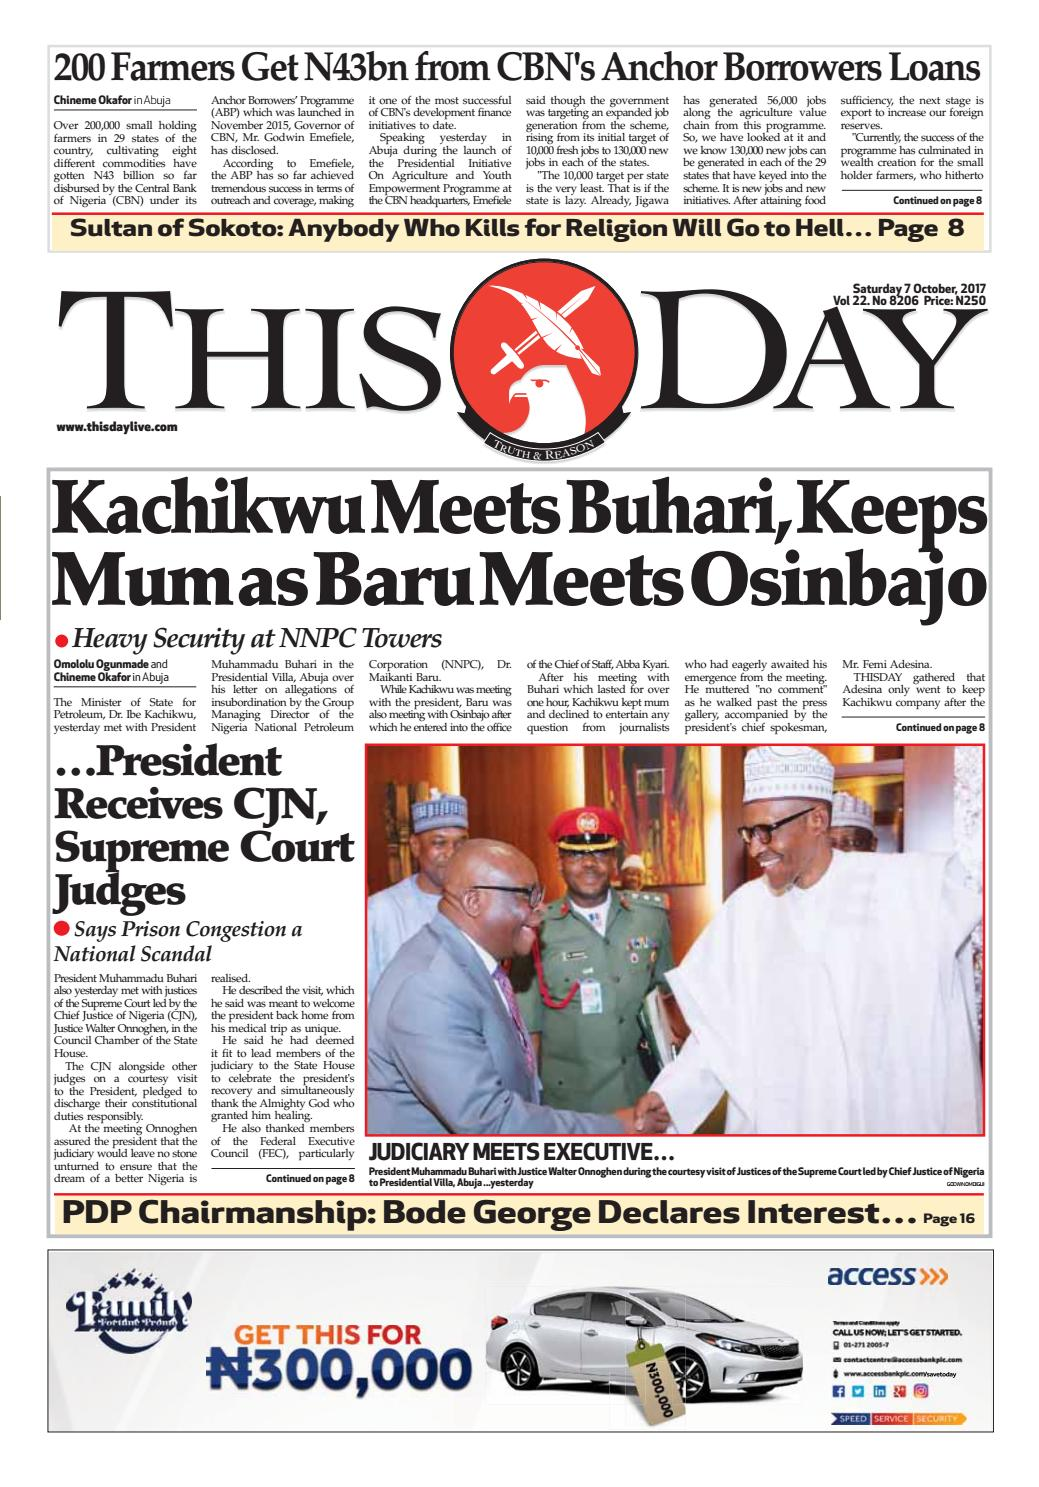 f0edfdcbec499 Saturday 7th October 2017 by THISDAY Newspapers Ltd - issuu